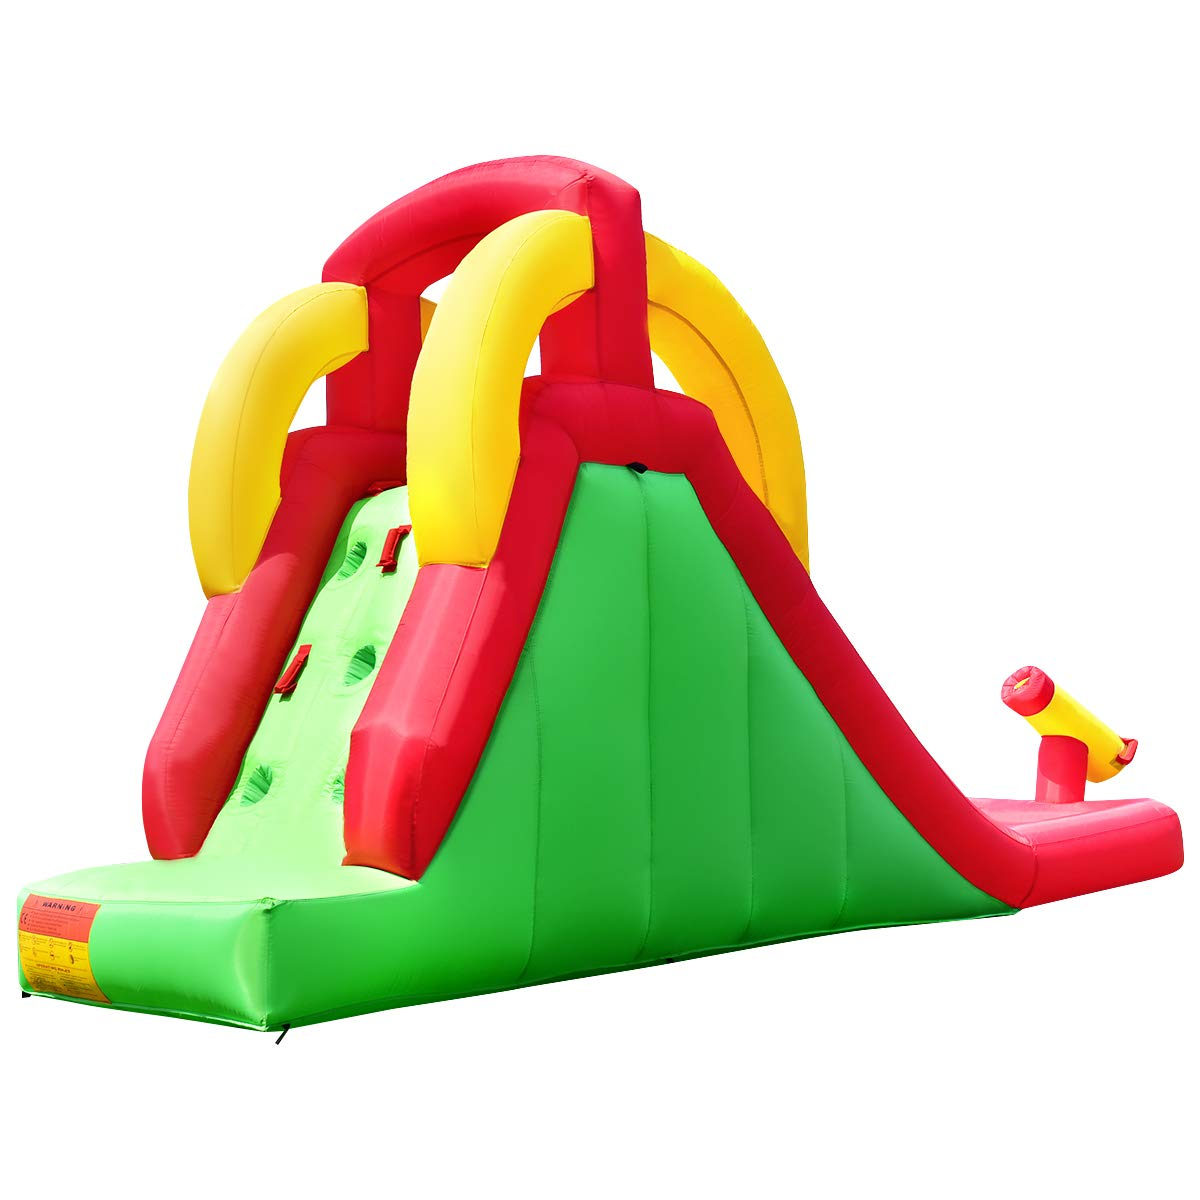 Costzon Inflatable Water Slide, Climb and Slide Bouncer for Kids Without Blower by Costzon (Image #5)